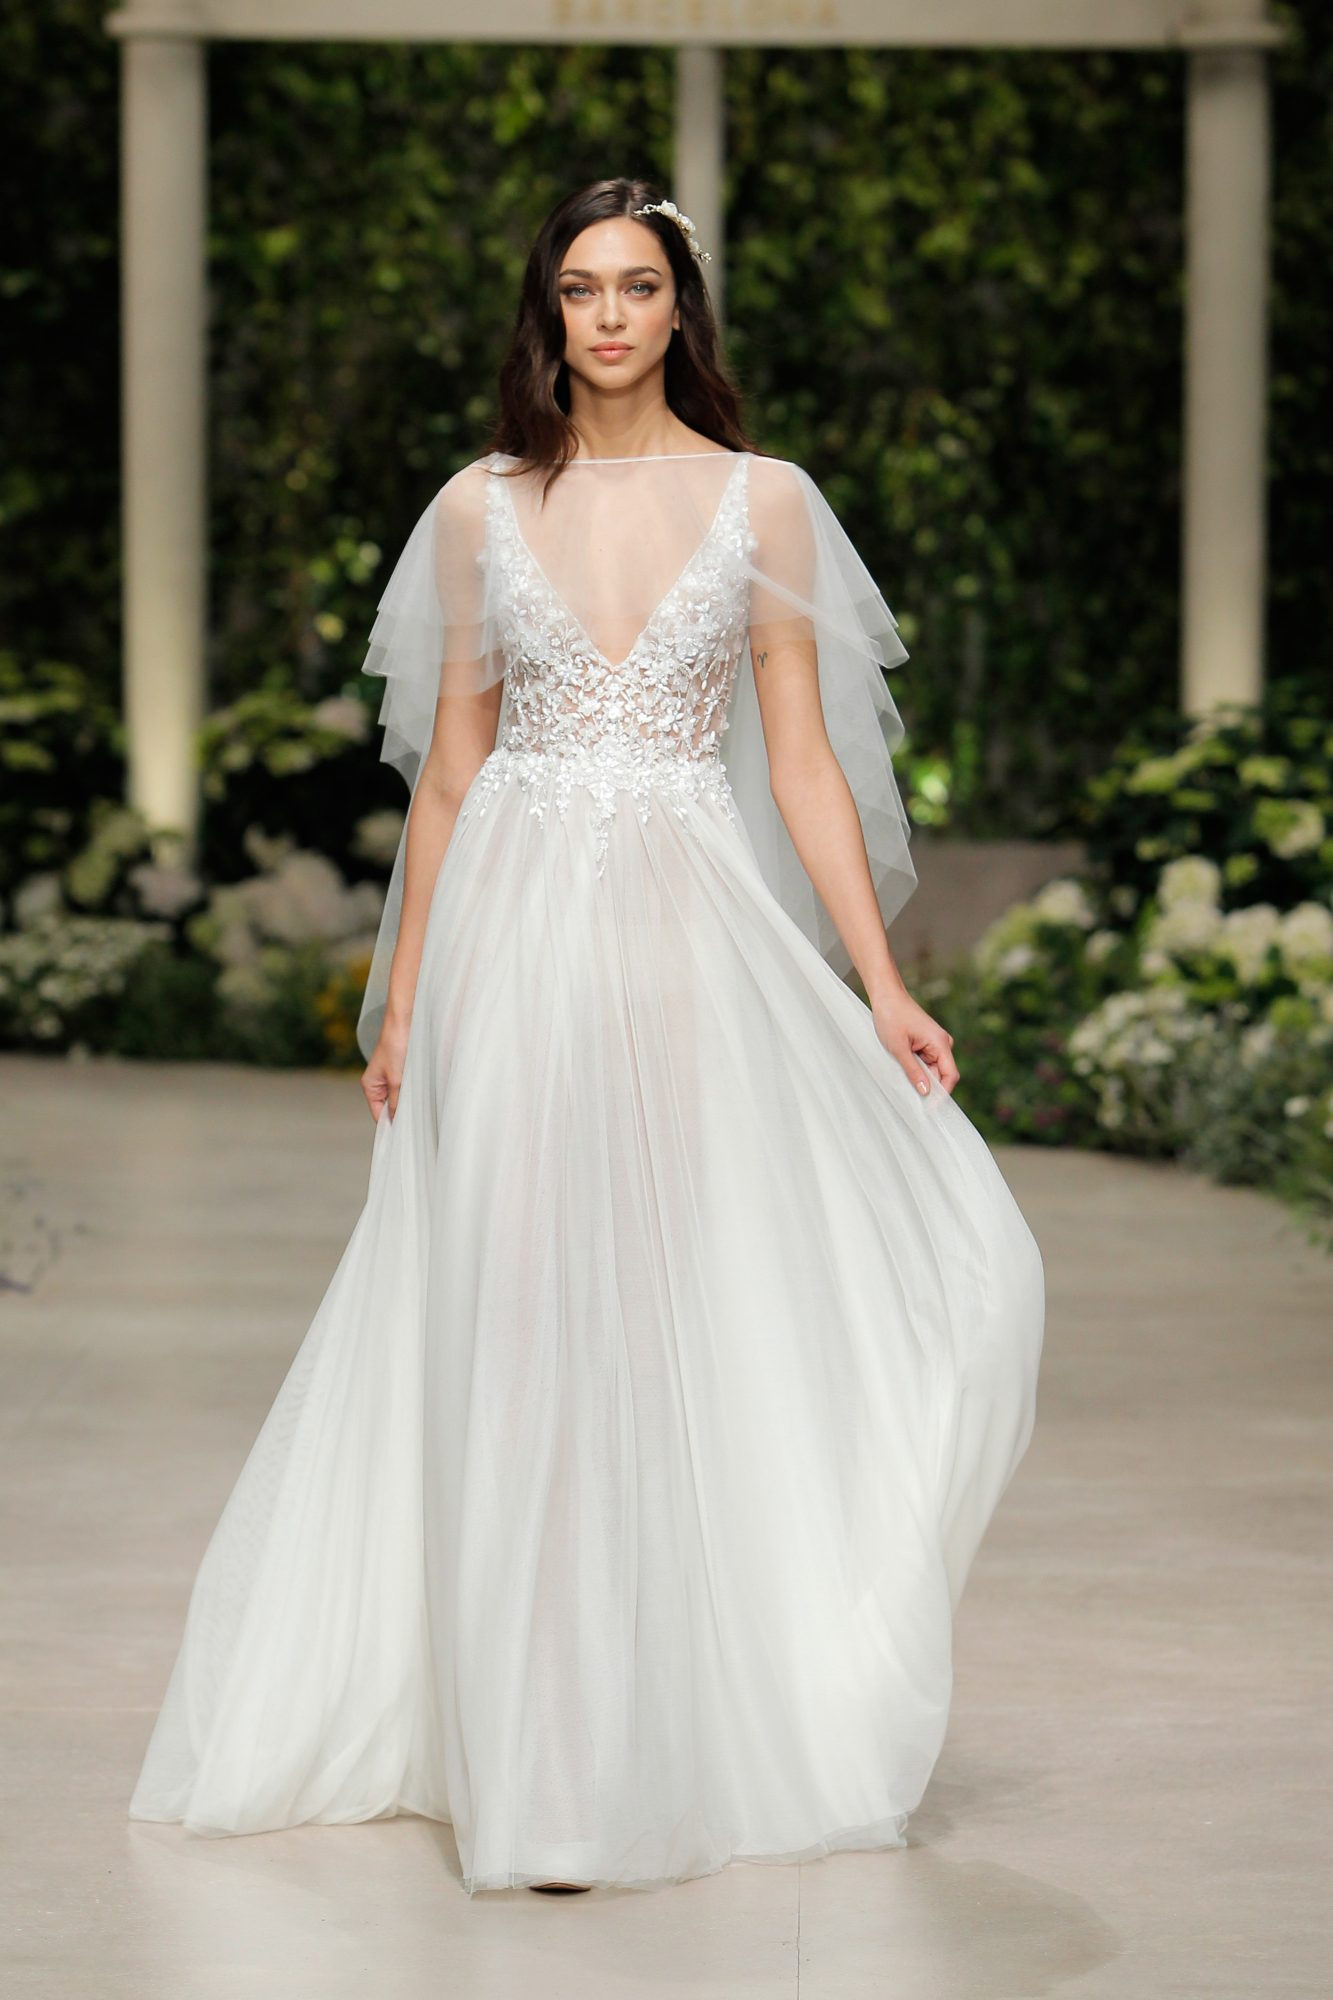 pronovias wedding dress spring 2019 a-line v-neck